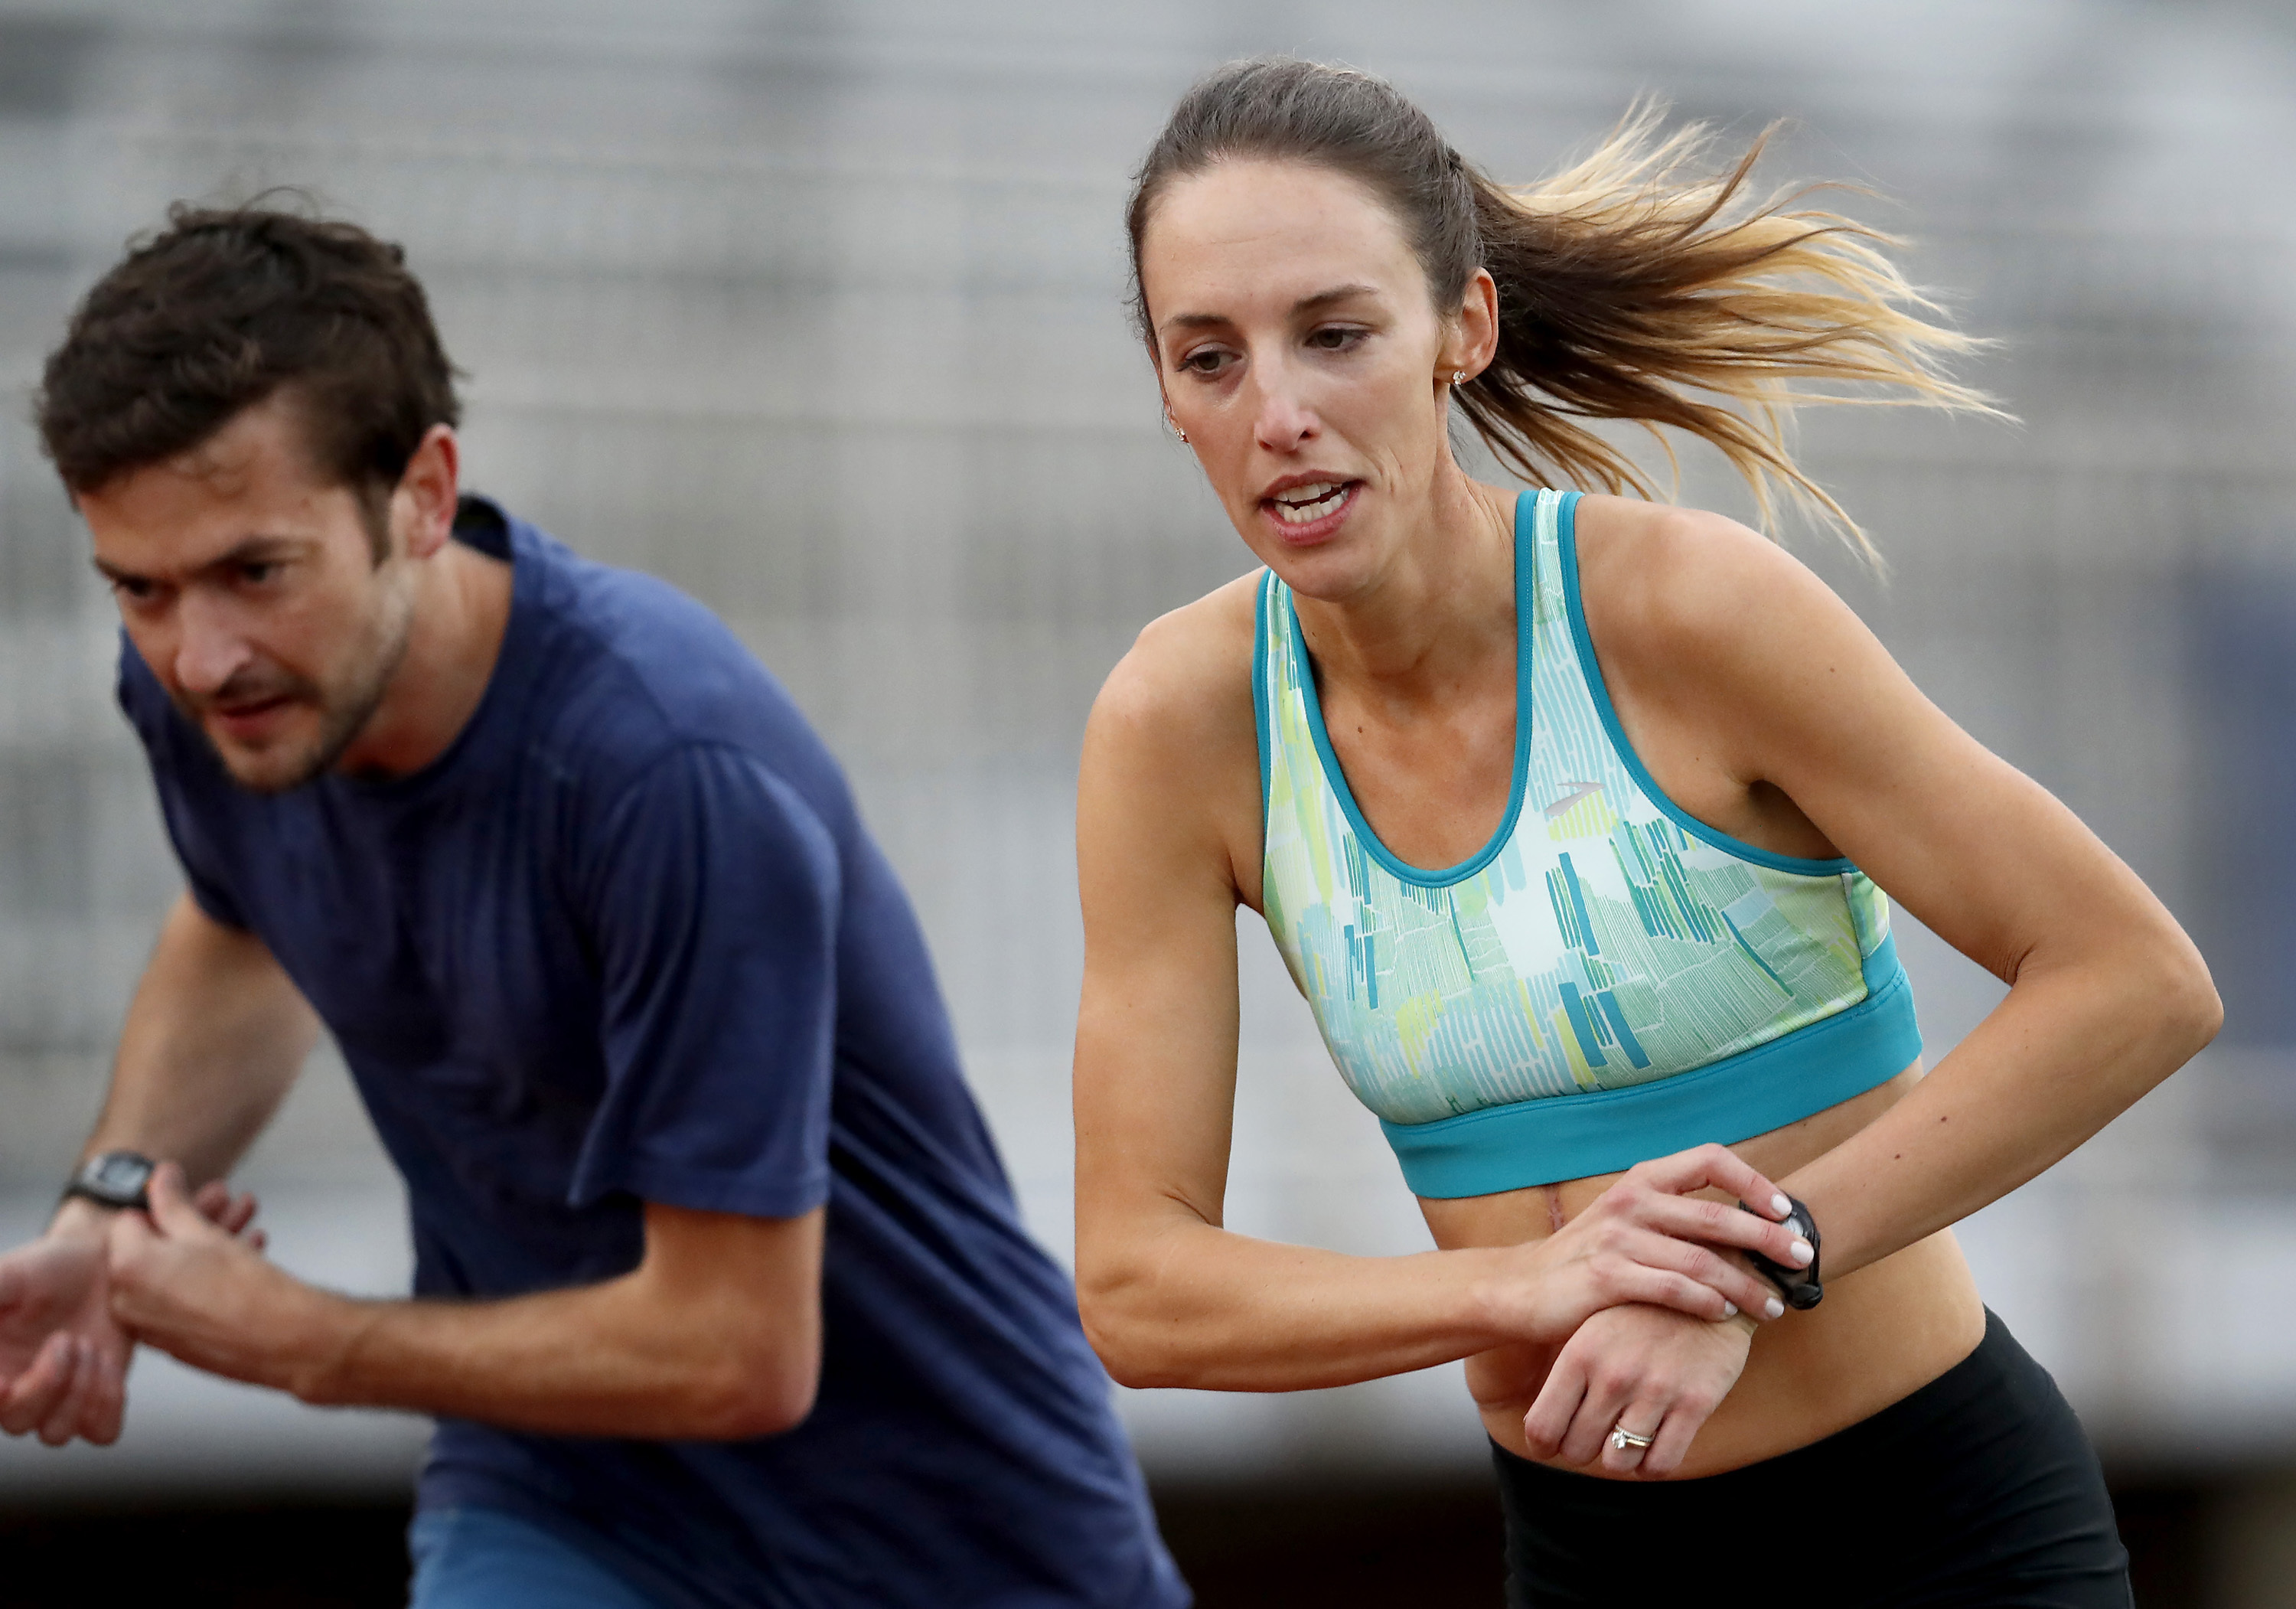 FILE - In this May 8, 2017, file photo, Gabriele Grunewald trains at Macalester College in St. Paul, Minn. Grunewald is two weeks into chemotherapy to treat cancer that's gone from her salivary gland to her liver. That won't keep her from taking the start